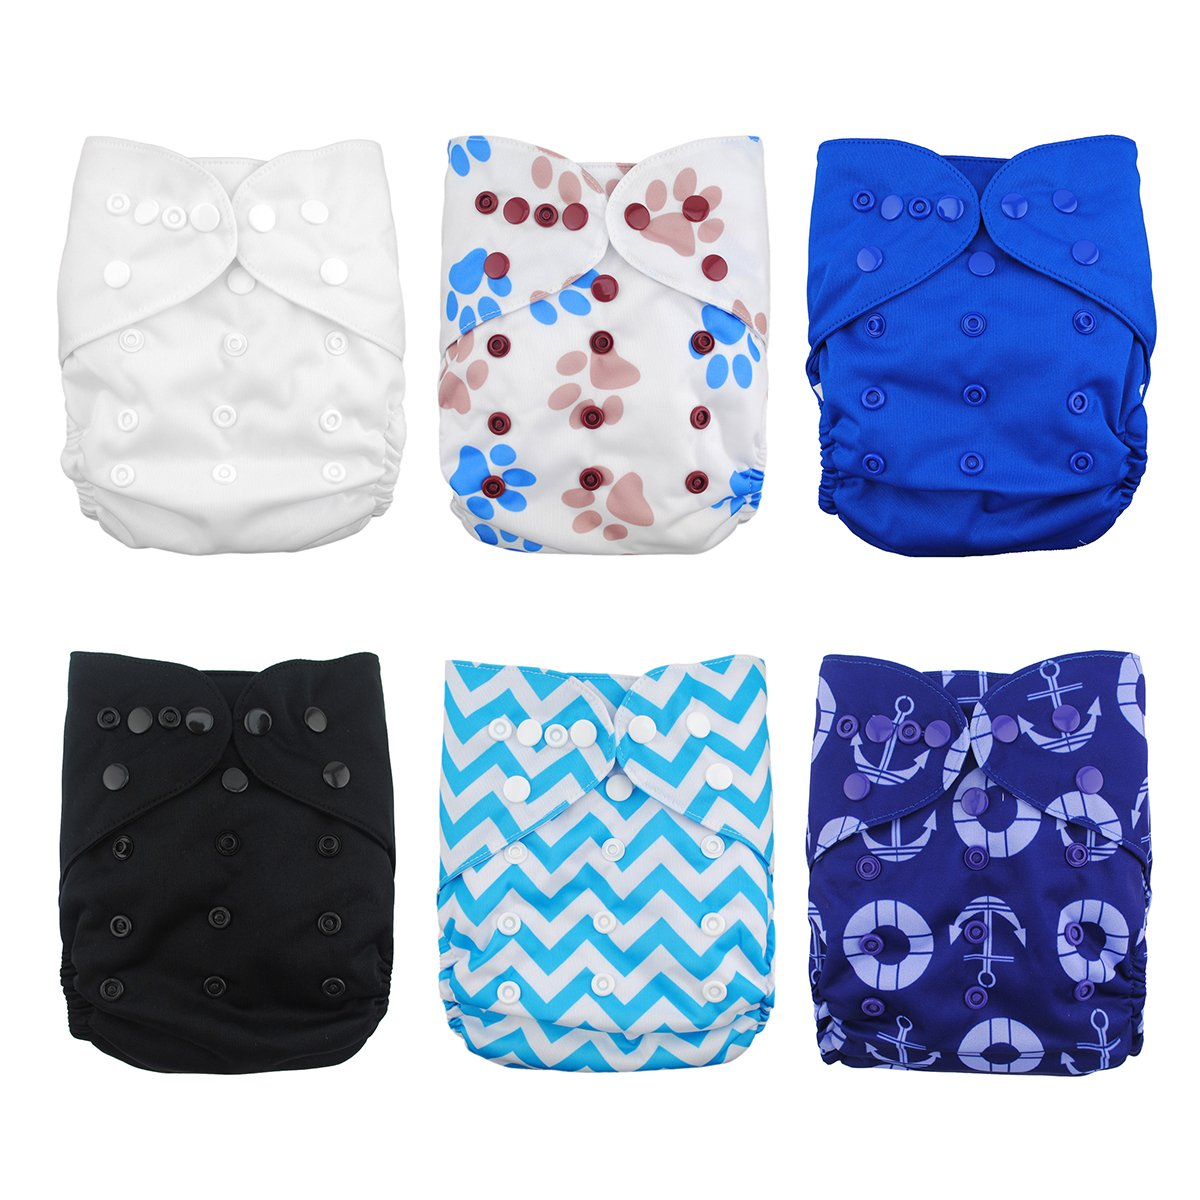 Babygoal Baby Cloth Diaper Covers for Boys, Adjustable Reusable Washable 6pcs Diaper Covers for Fitted Diapers and Prefolds, Baby Shower Gift Sets 6DCF02 by babygoal